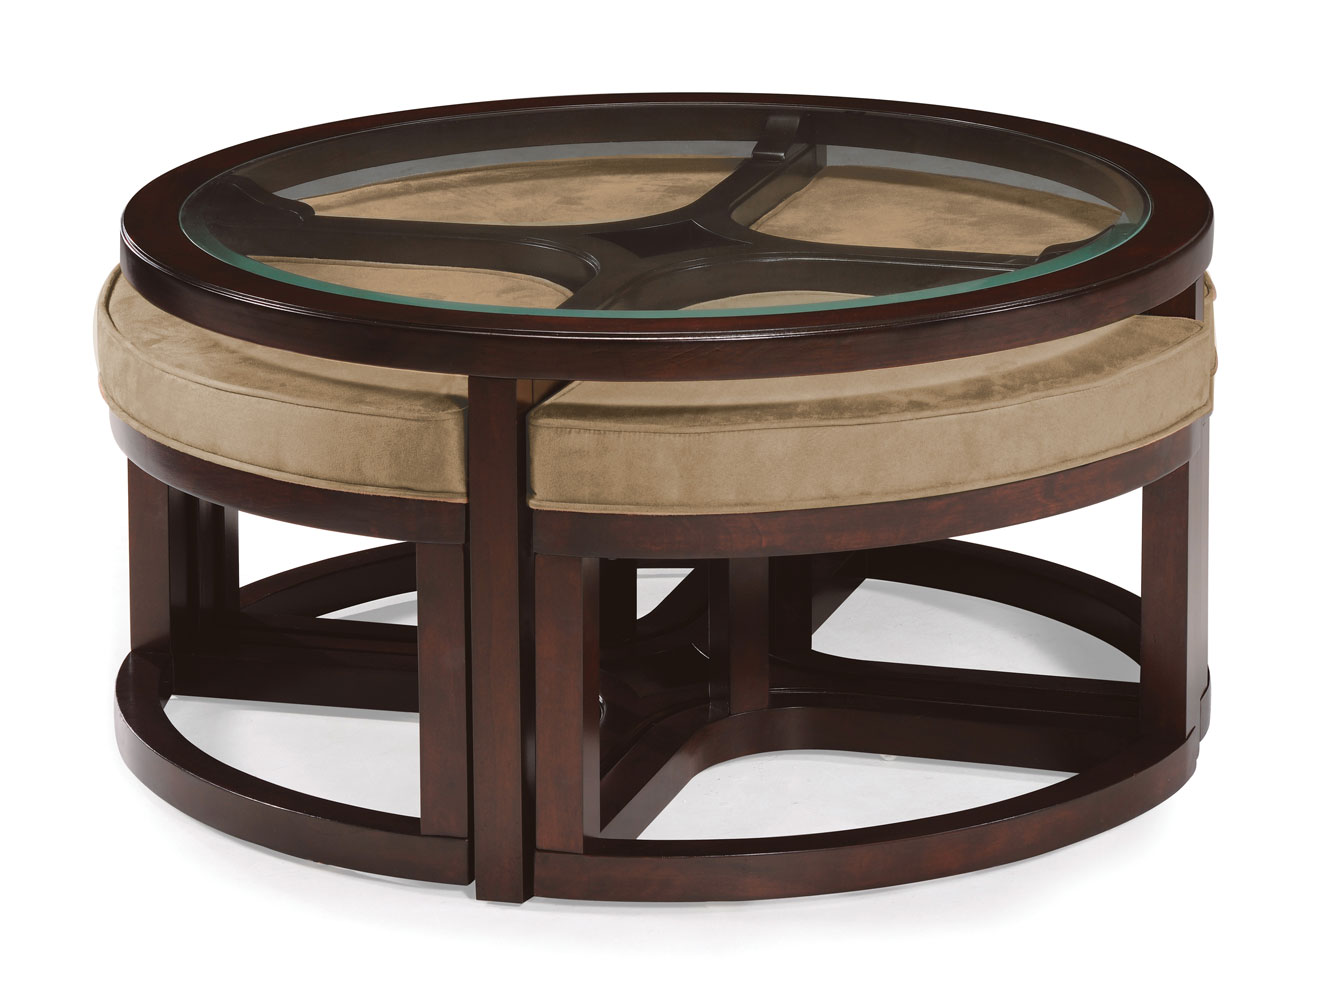 juniper round cocktail table with 4 stools (mink brown) - [t1020